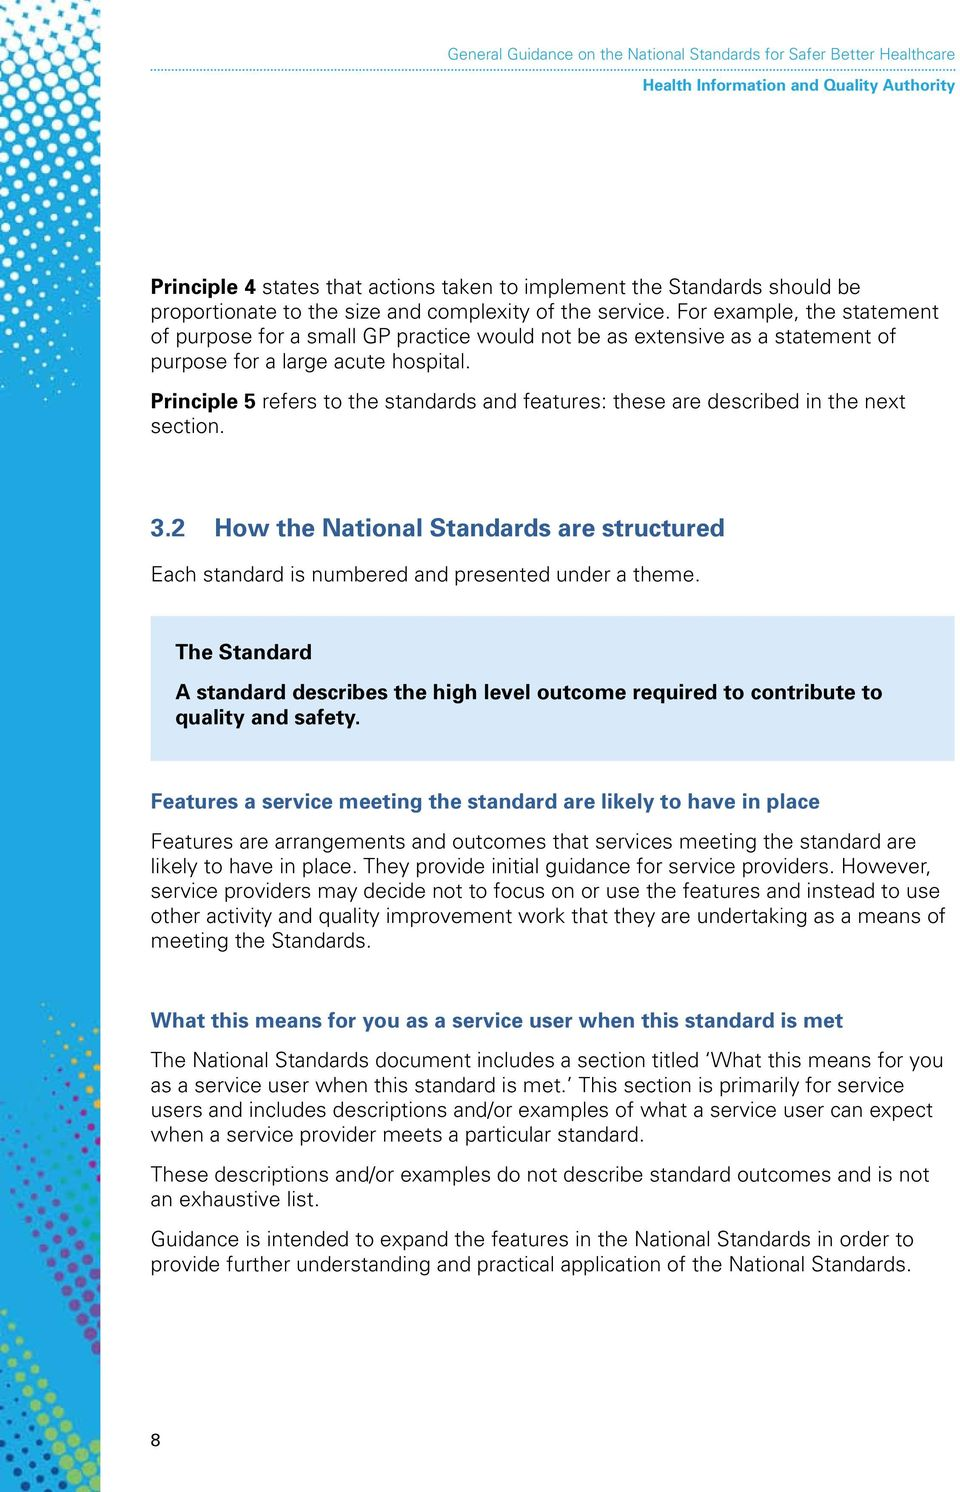 Principle 5 refers to the standards and features: these are described in the next section. 3.2 How the National Standards are structured Each standard is numbered and presented under a theme.